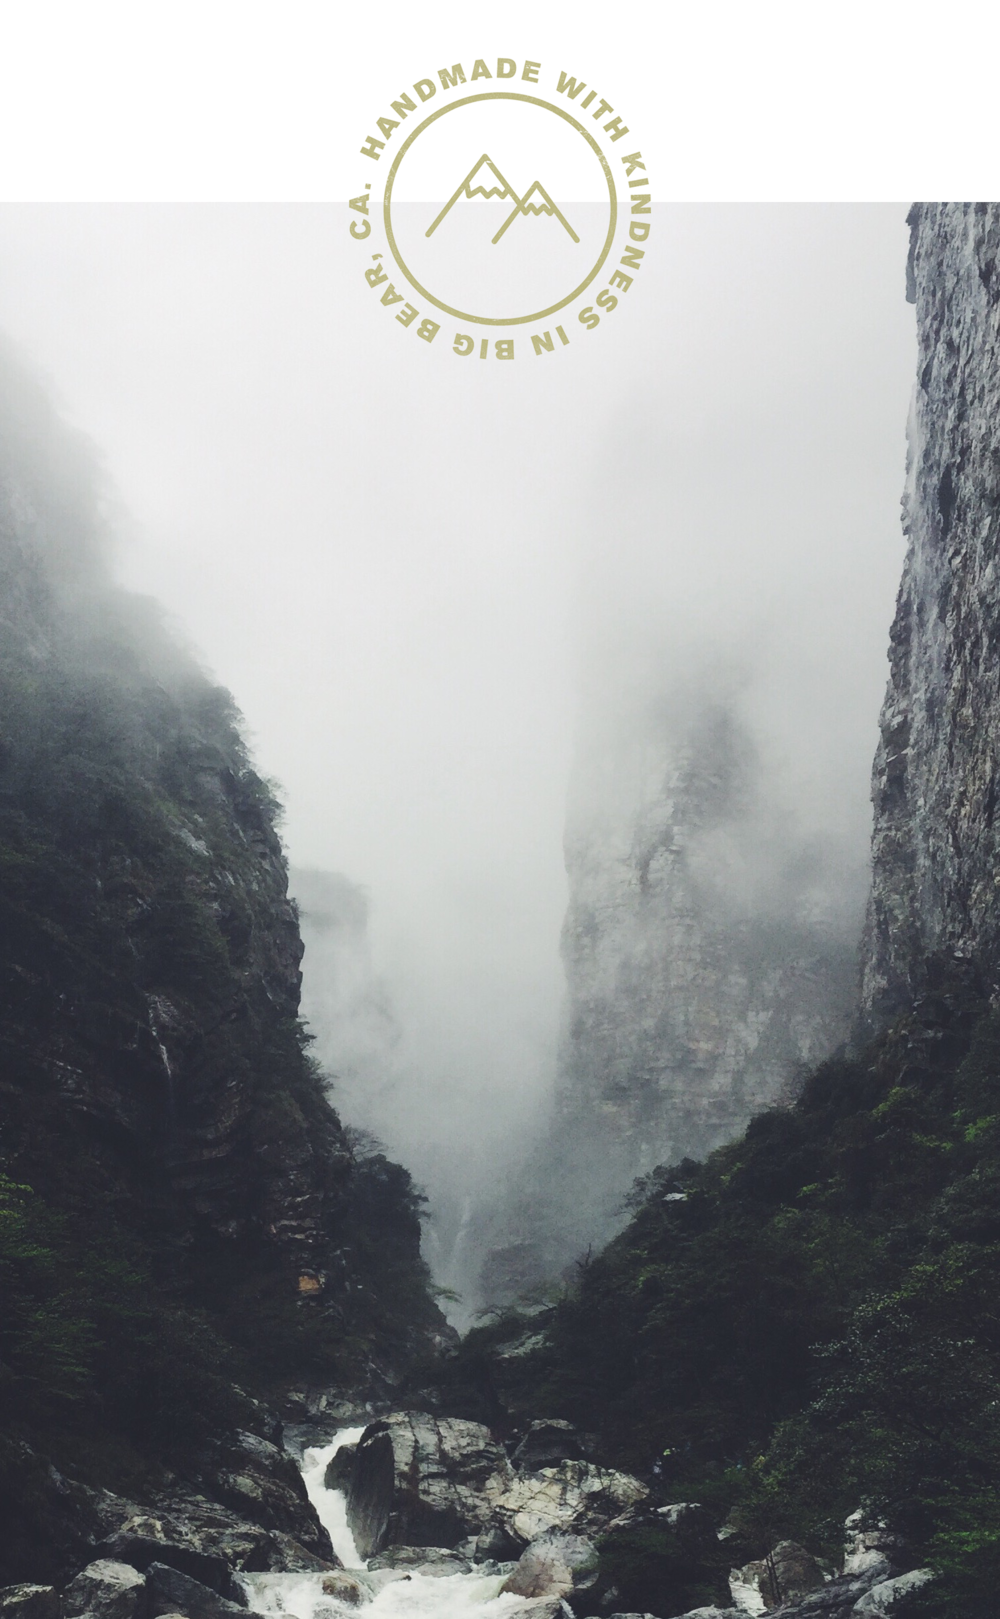 the_kindness_soap_co_poster_branding_by_inbetween_studio